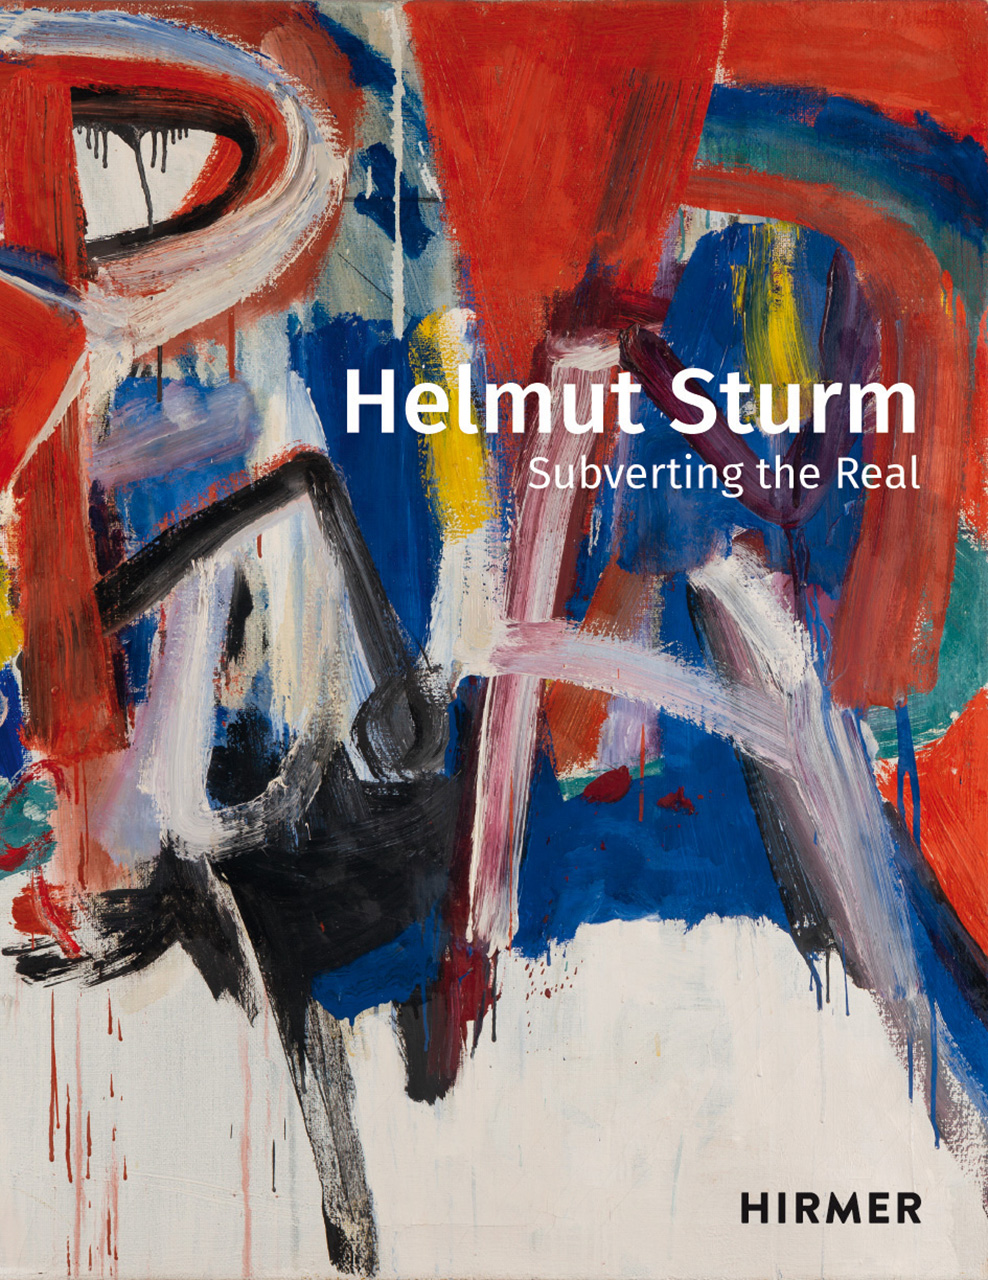 Helmut Sturm: Subverting the Real